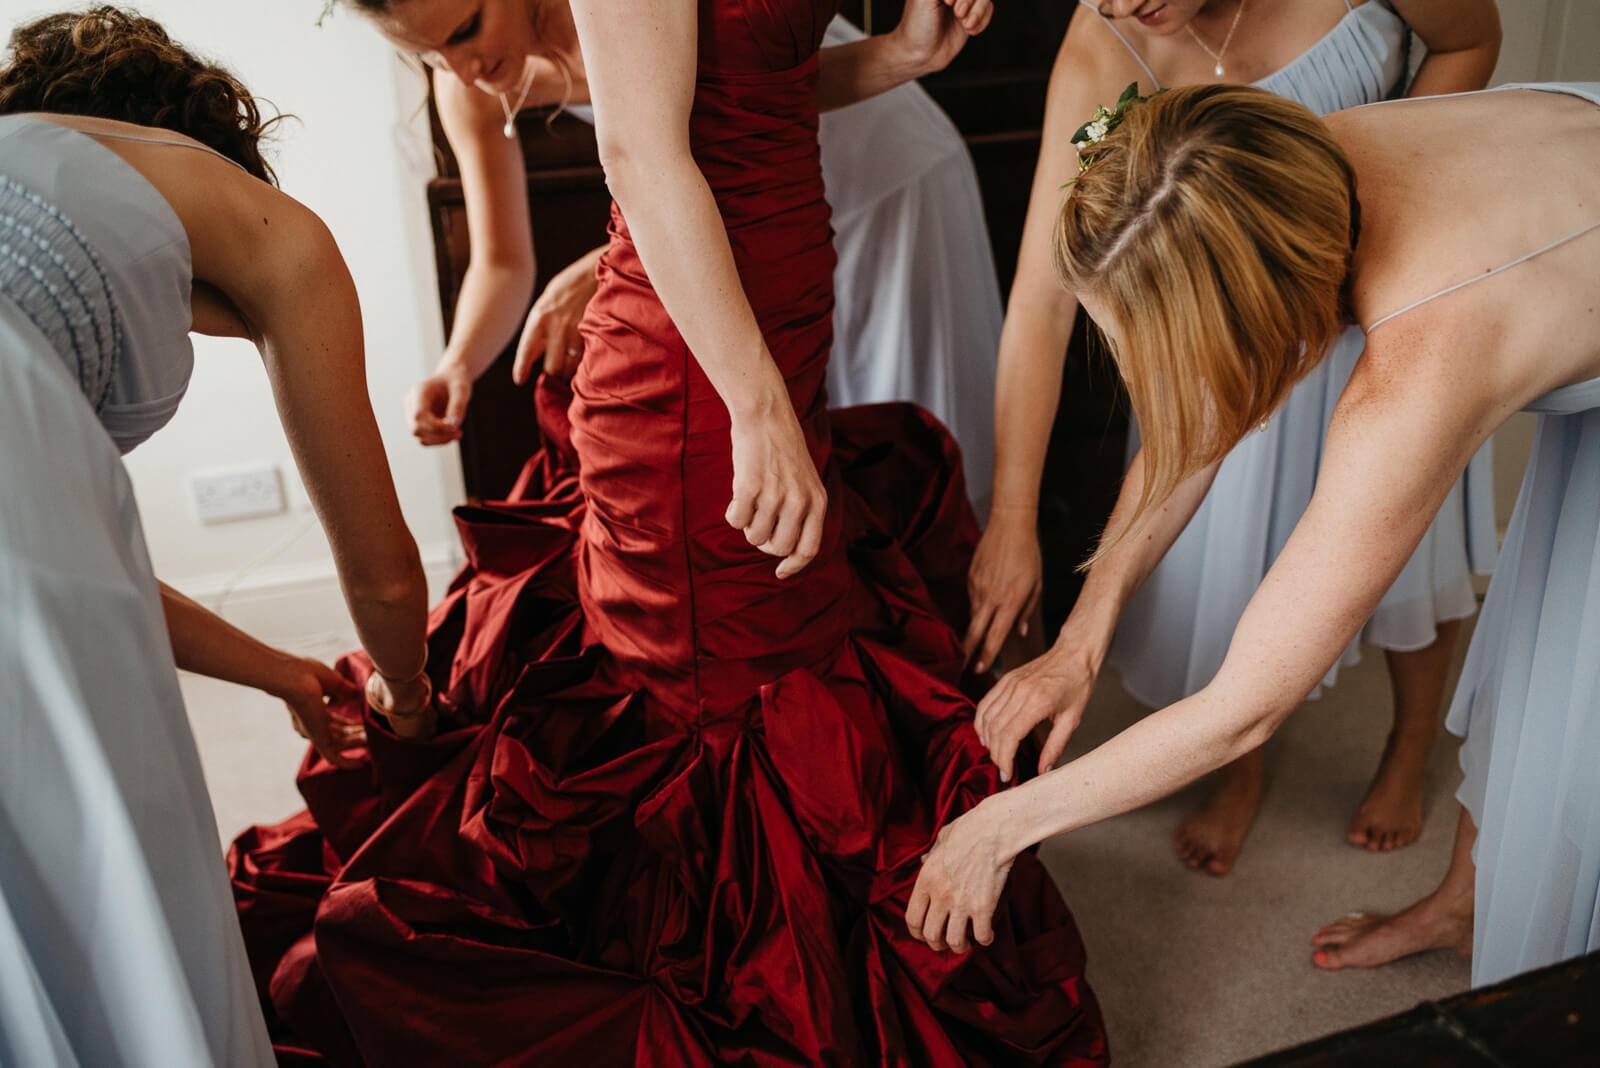 bridesmaids fuss with red taffeta wedding dress during morning getting ready